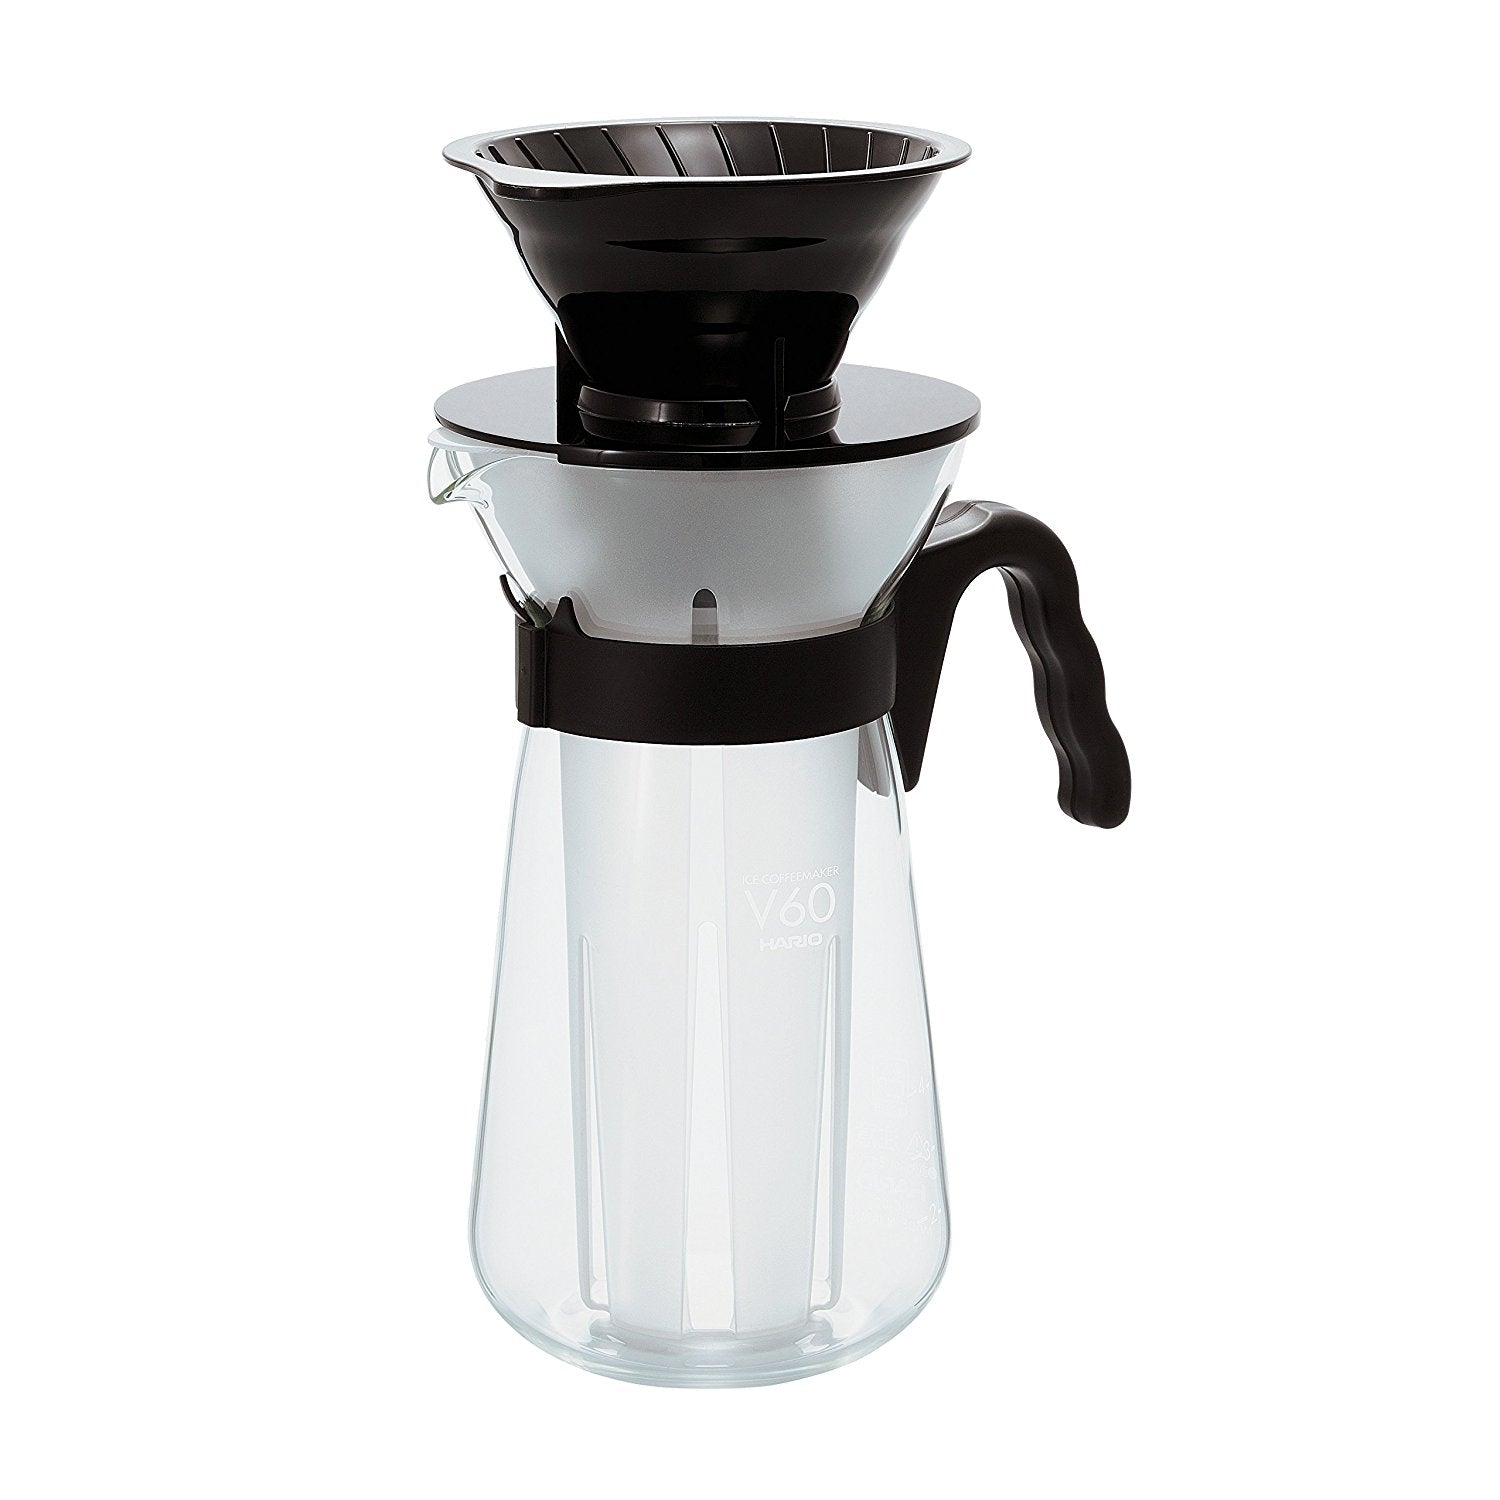 Hario V60 Fretta Ice Coffee Maker / Brewer in Black (VIC-02B) - Nomad Coffee Club